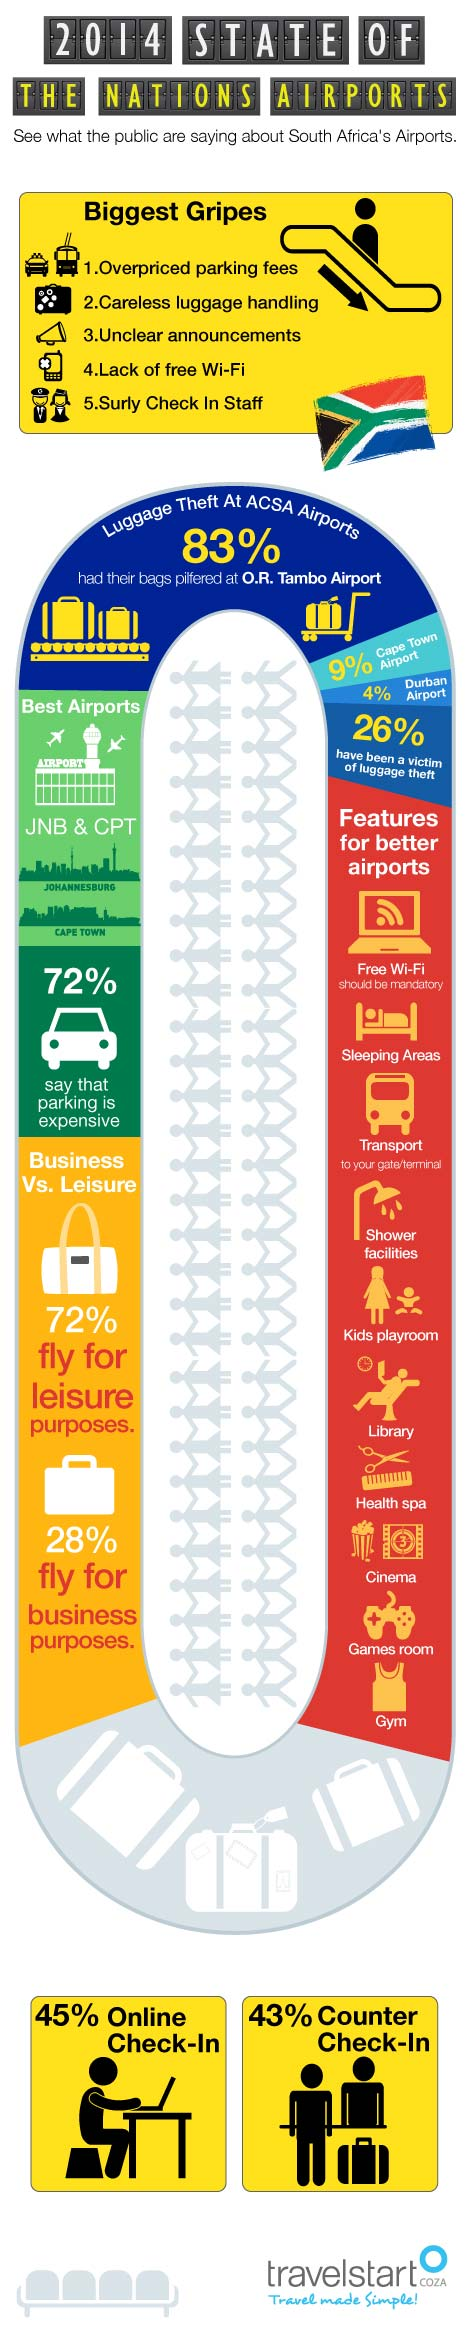 2014 State of the Nations Airports Travelstart Infographic